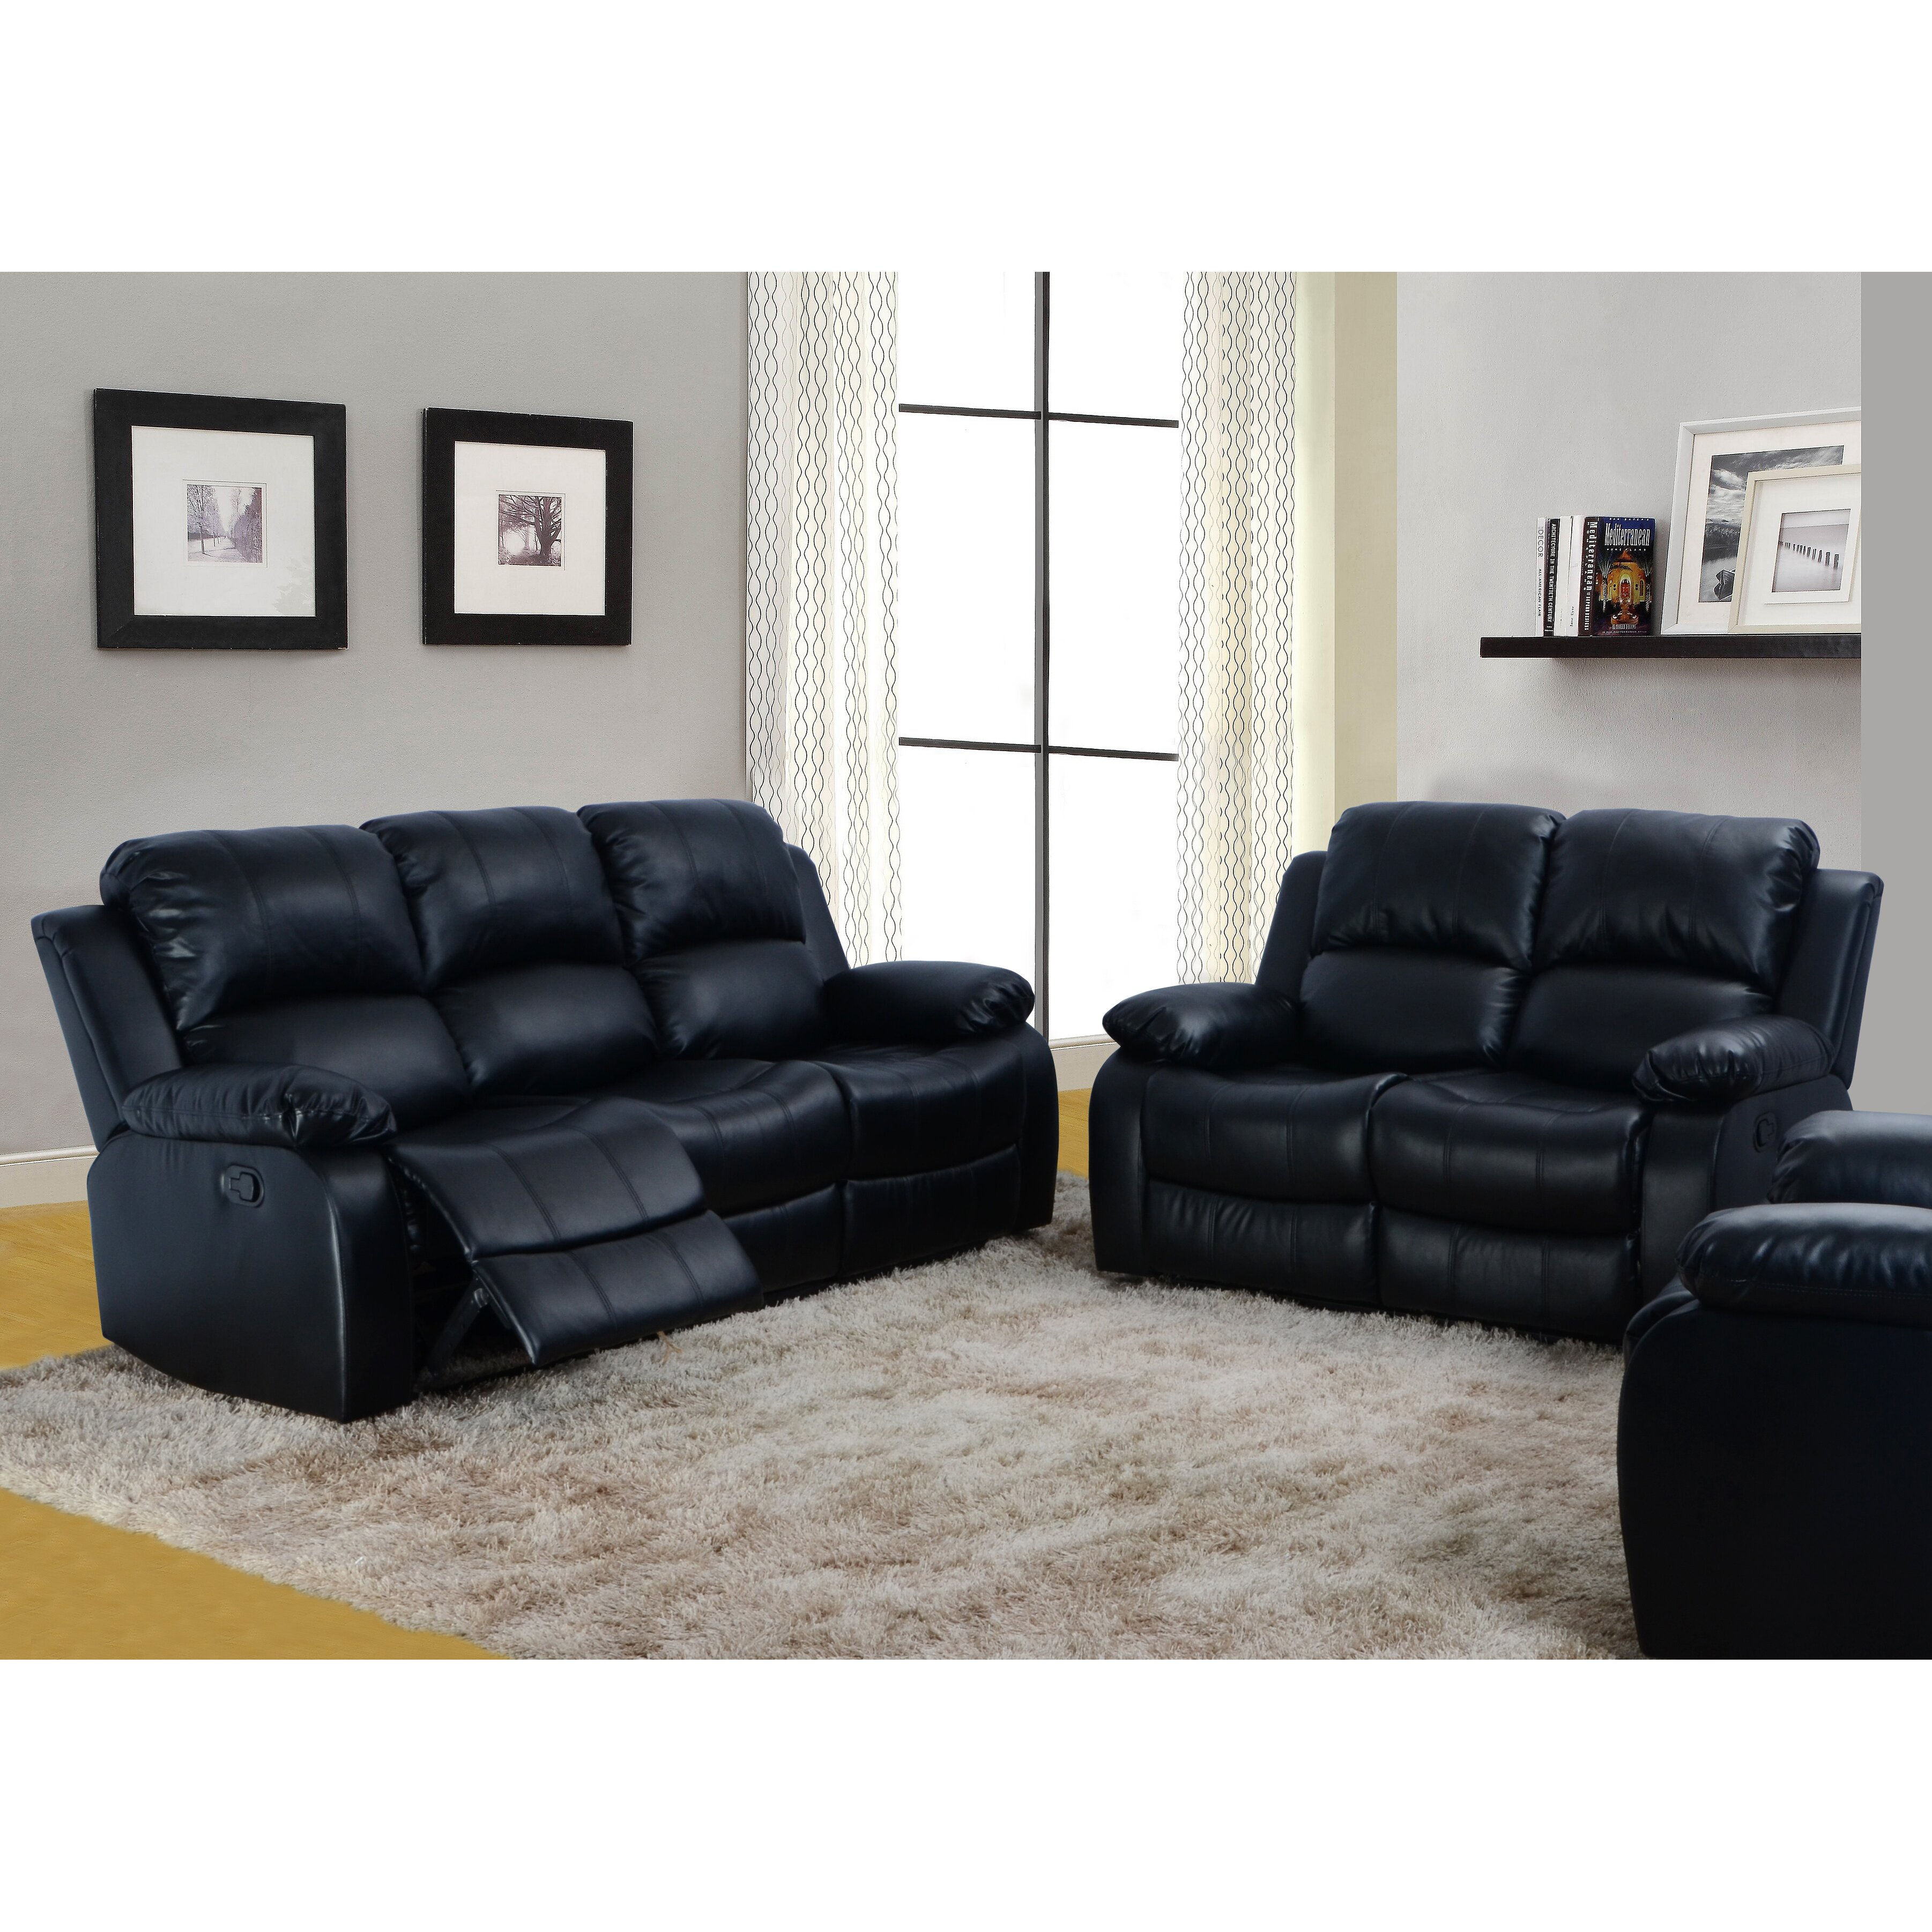 furniture denver 2 piece bonded leather reclining living room sofa set